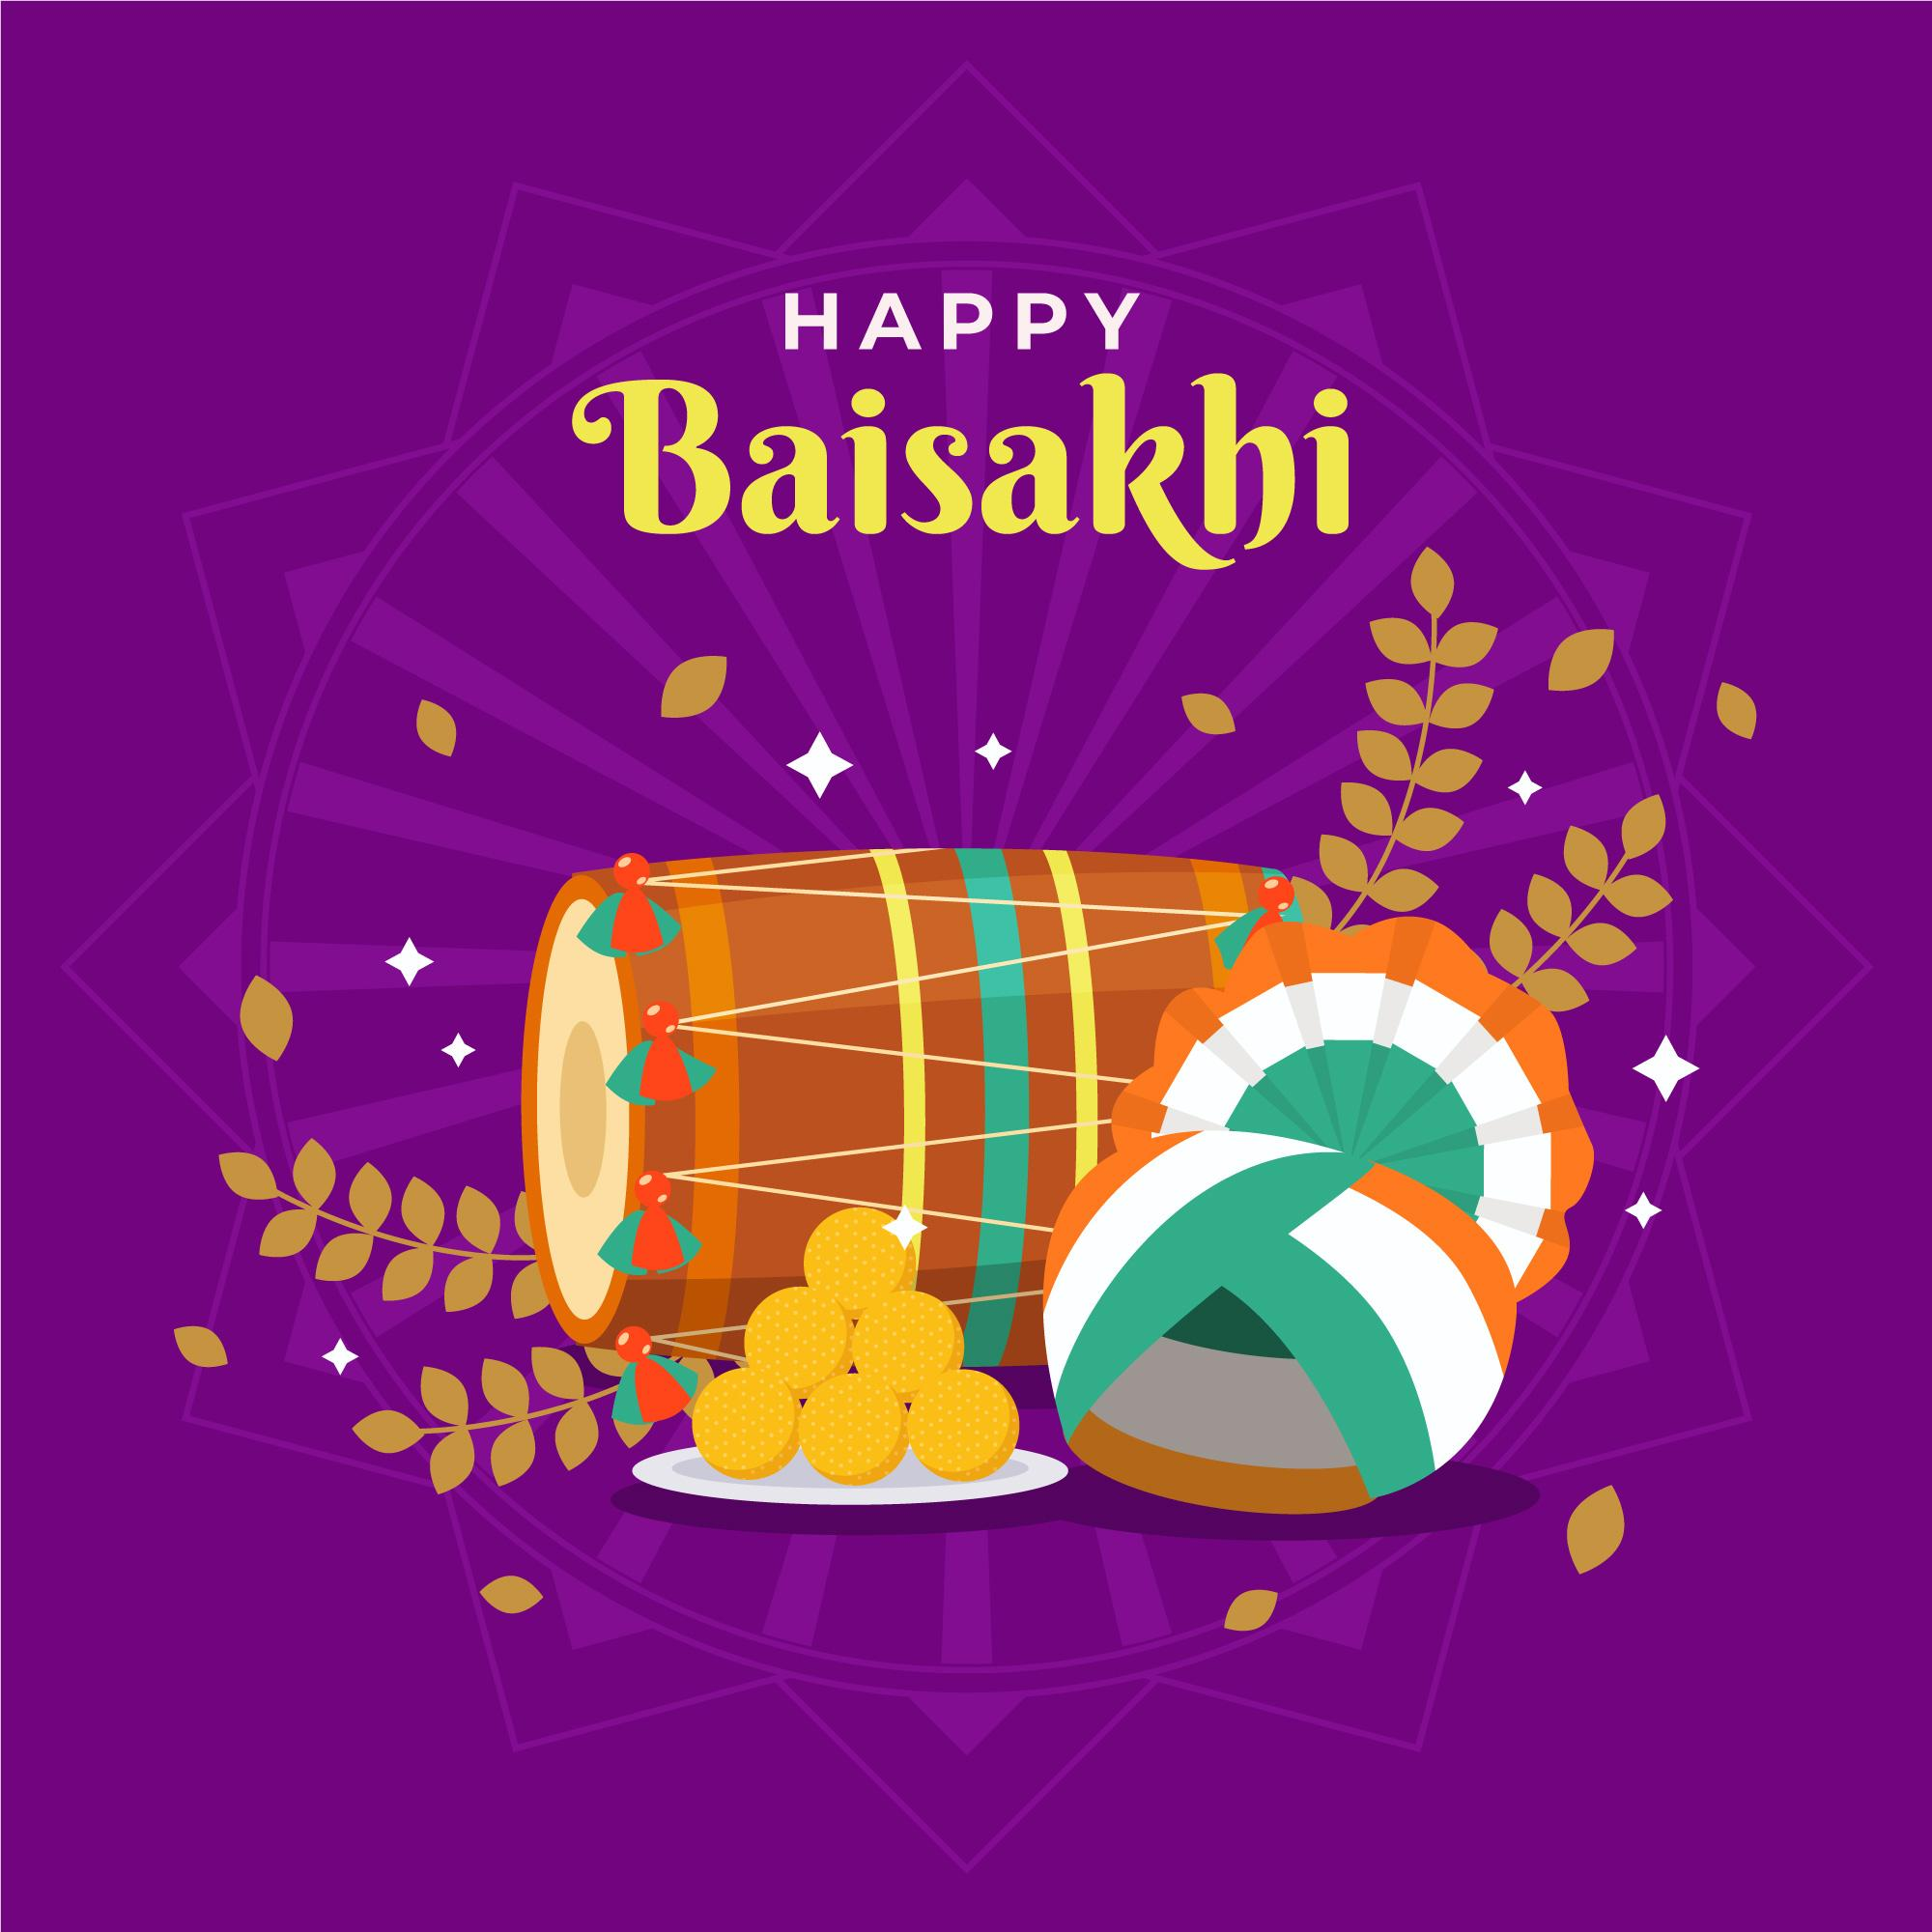 happy baisakhi wallpaper download